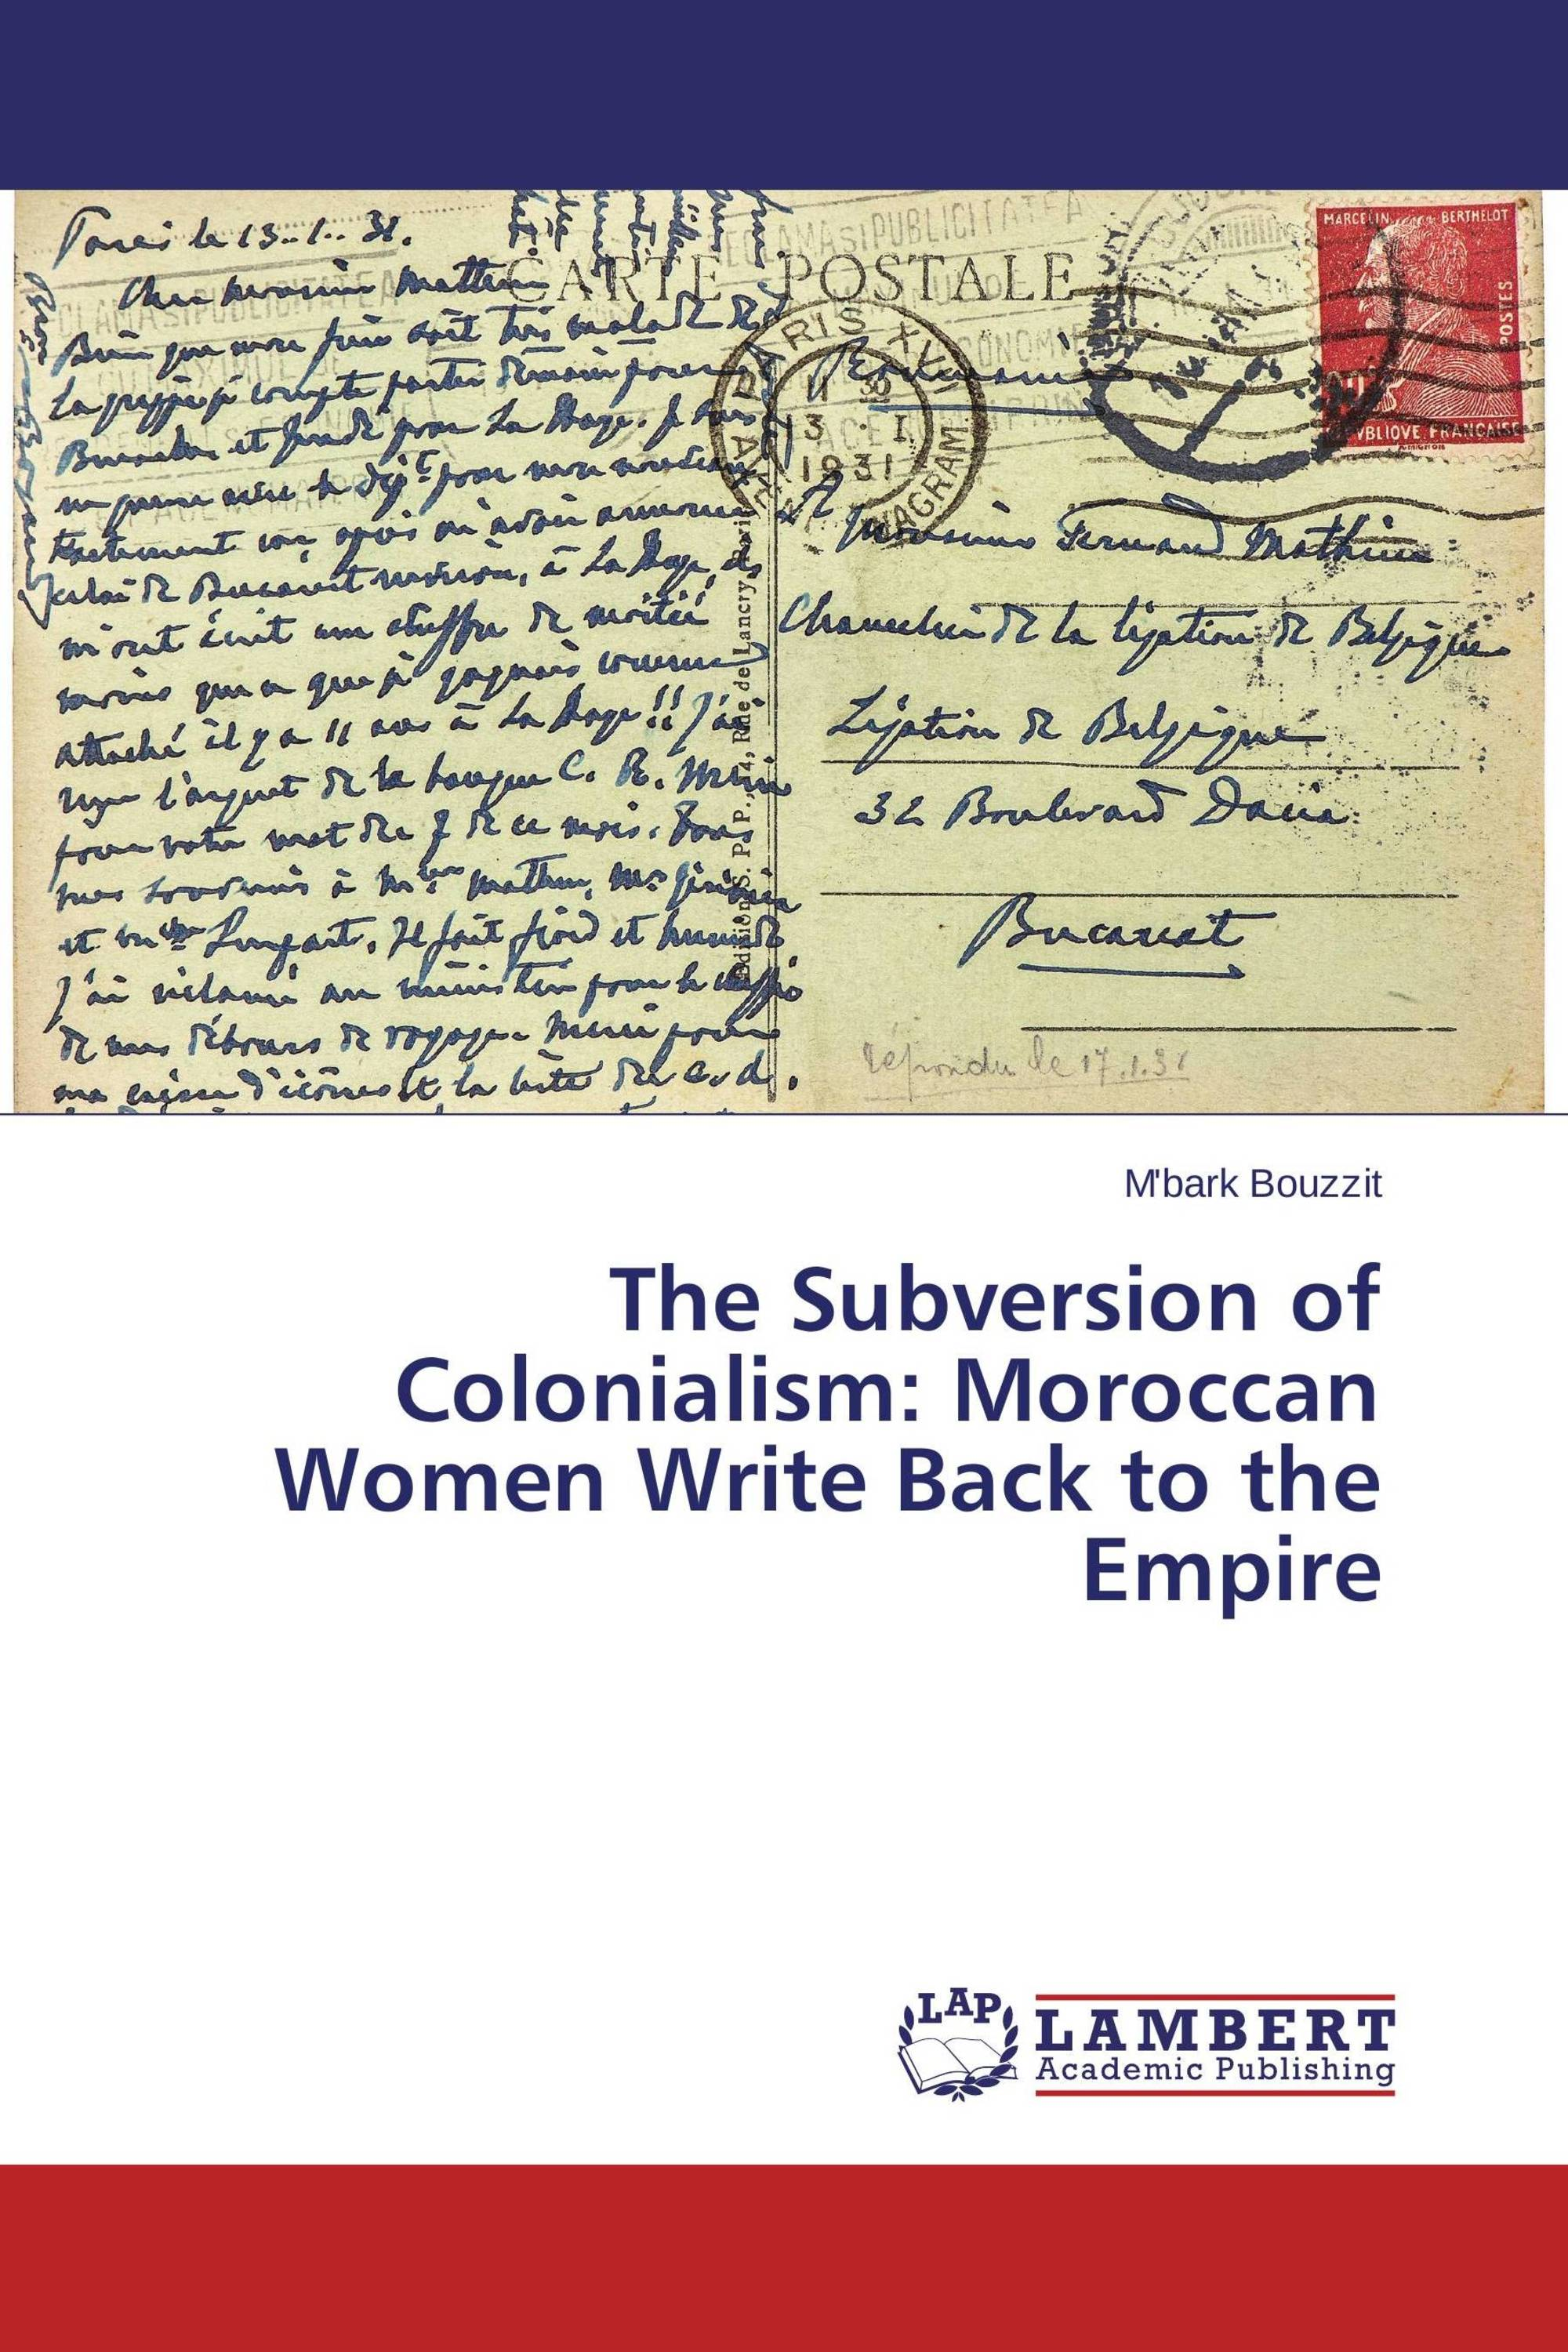 The Subversion of Colonialism: Moroccan Women Write Back to the Empire